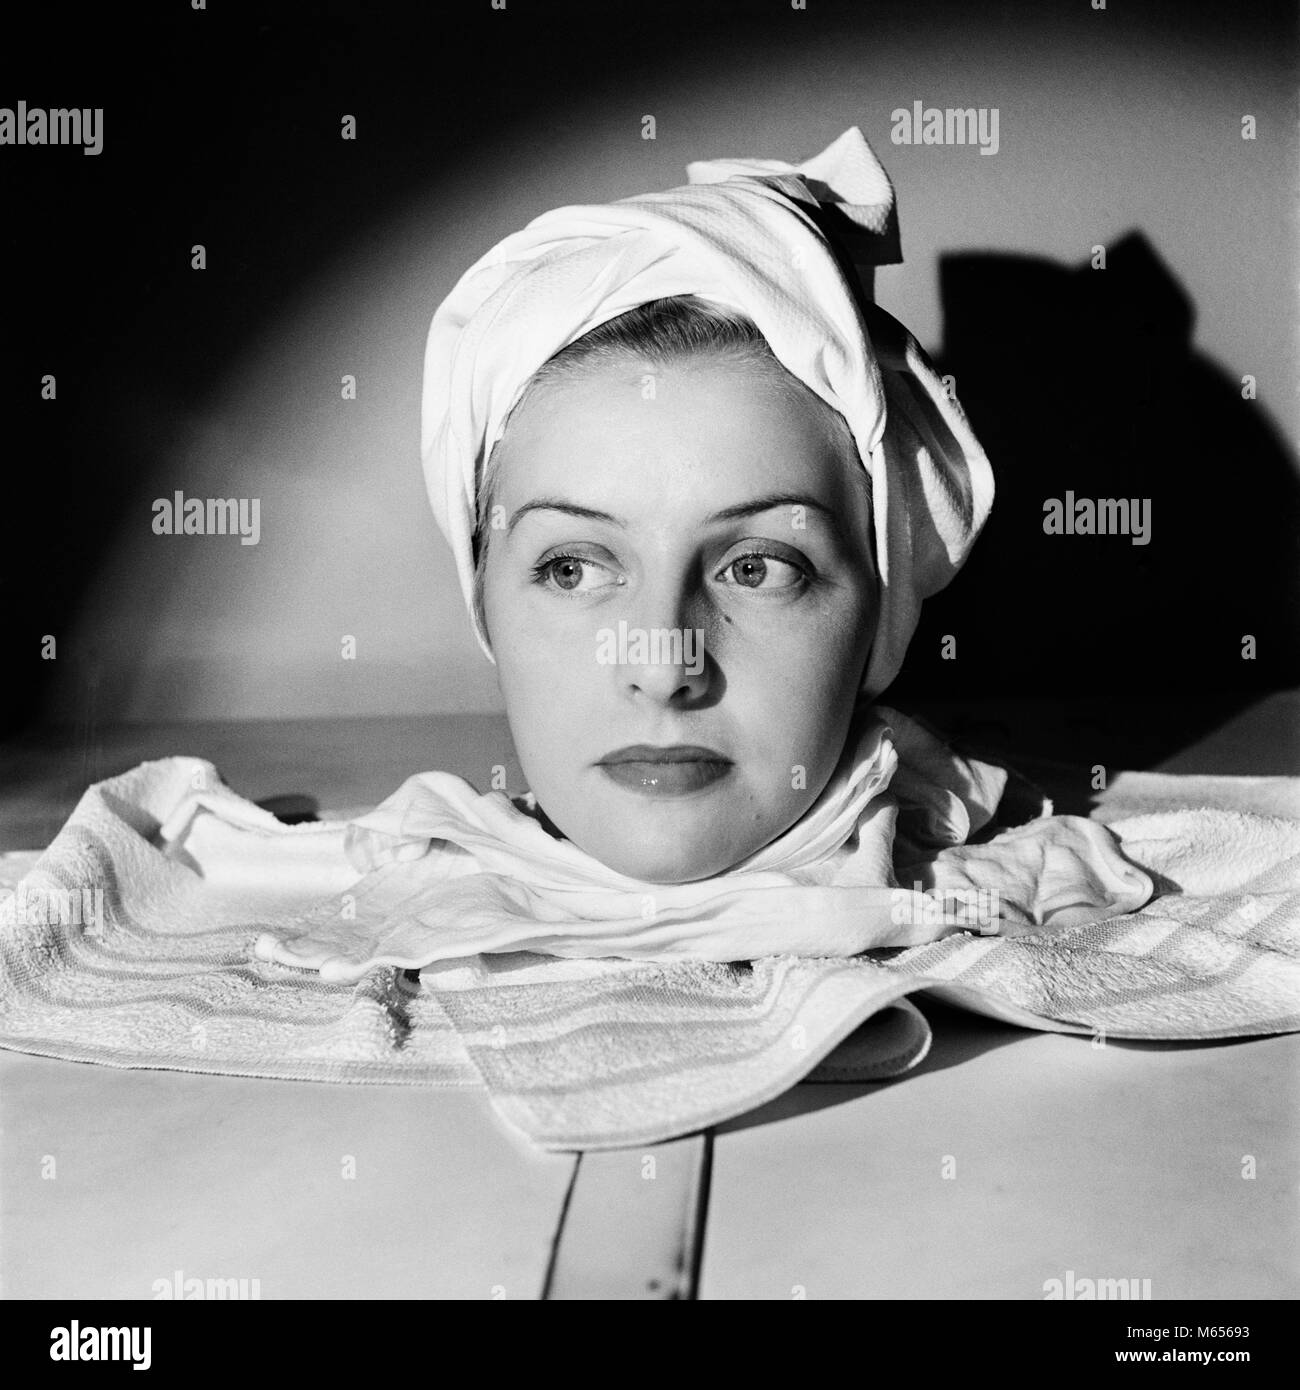 1950s PORTRAIT HEAD SHOT OF WOMAN RELAXING IN SPA SAUNA STEAM CABINET TOWEL  WRAPPED AROUND HEAD